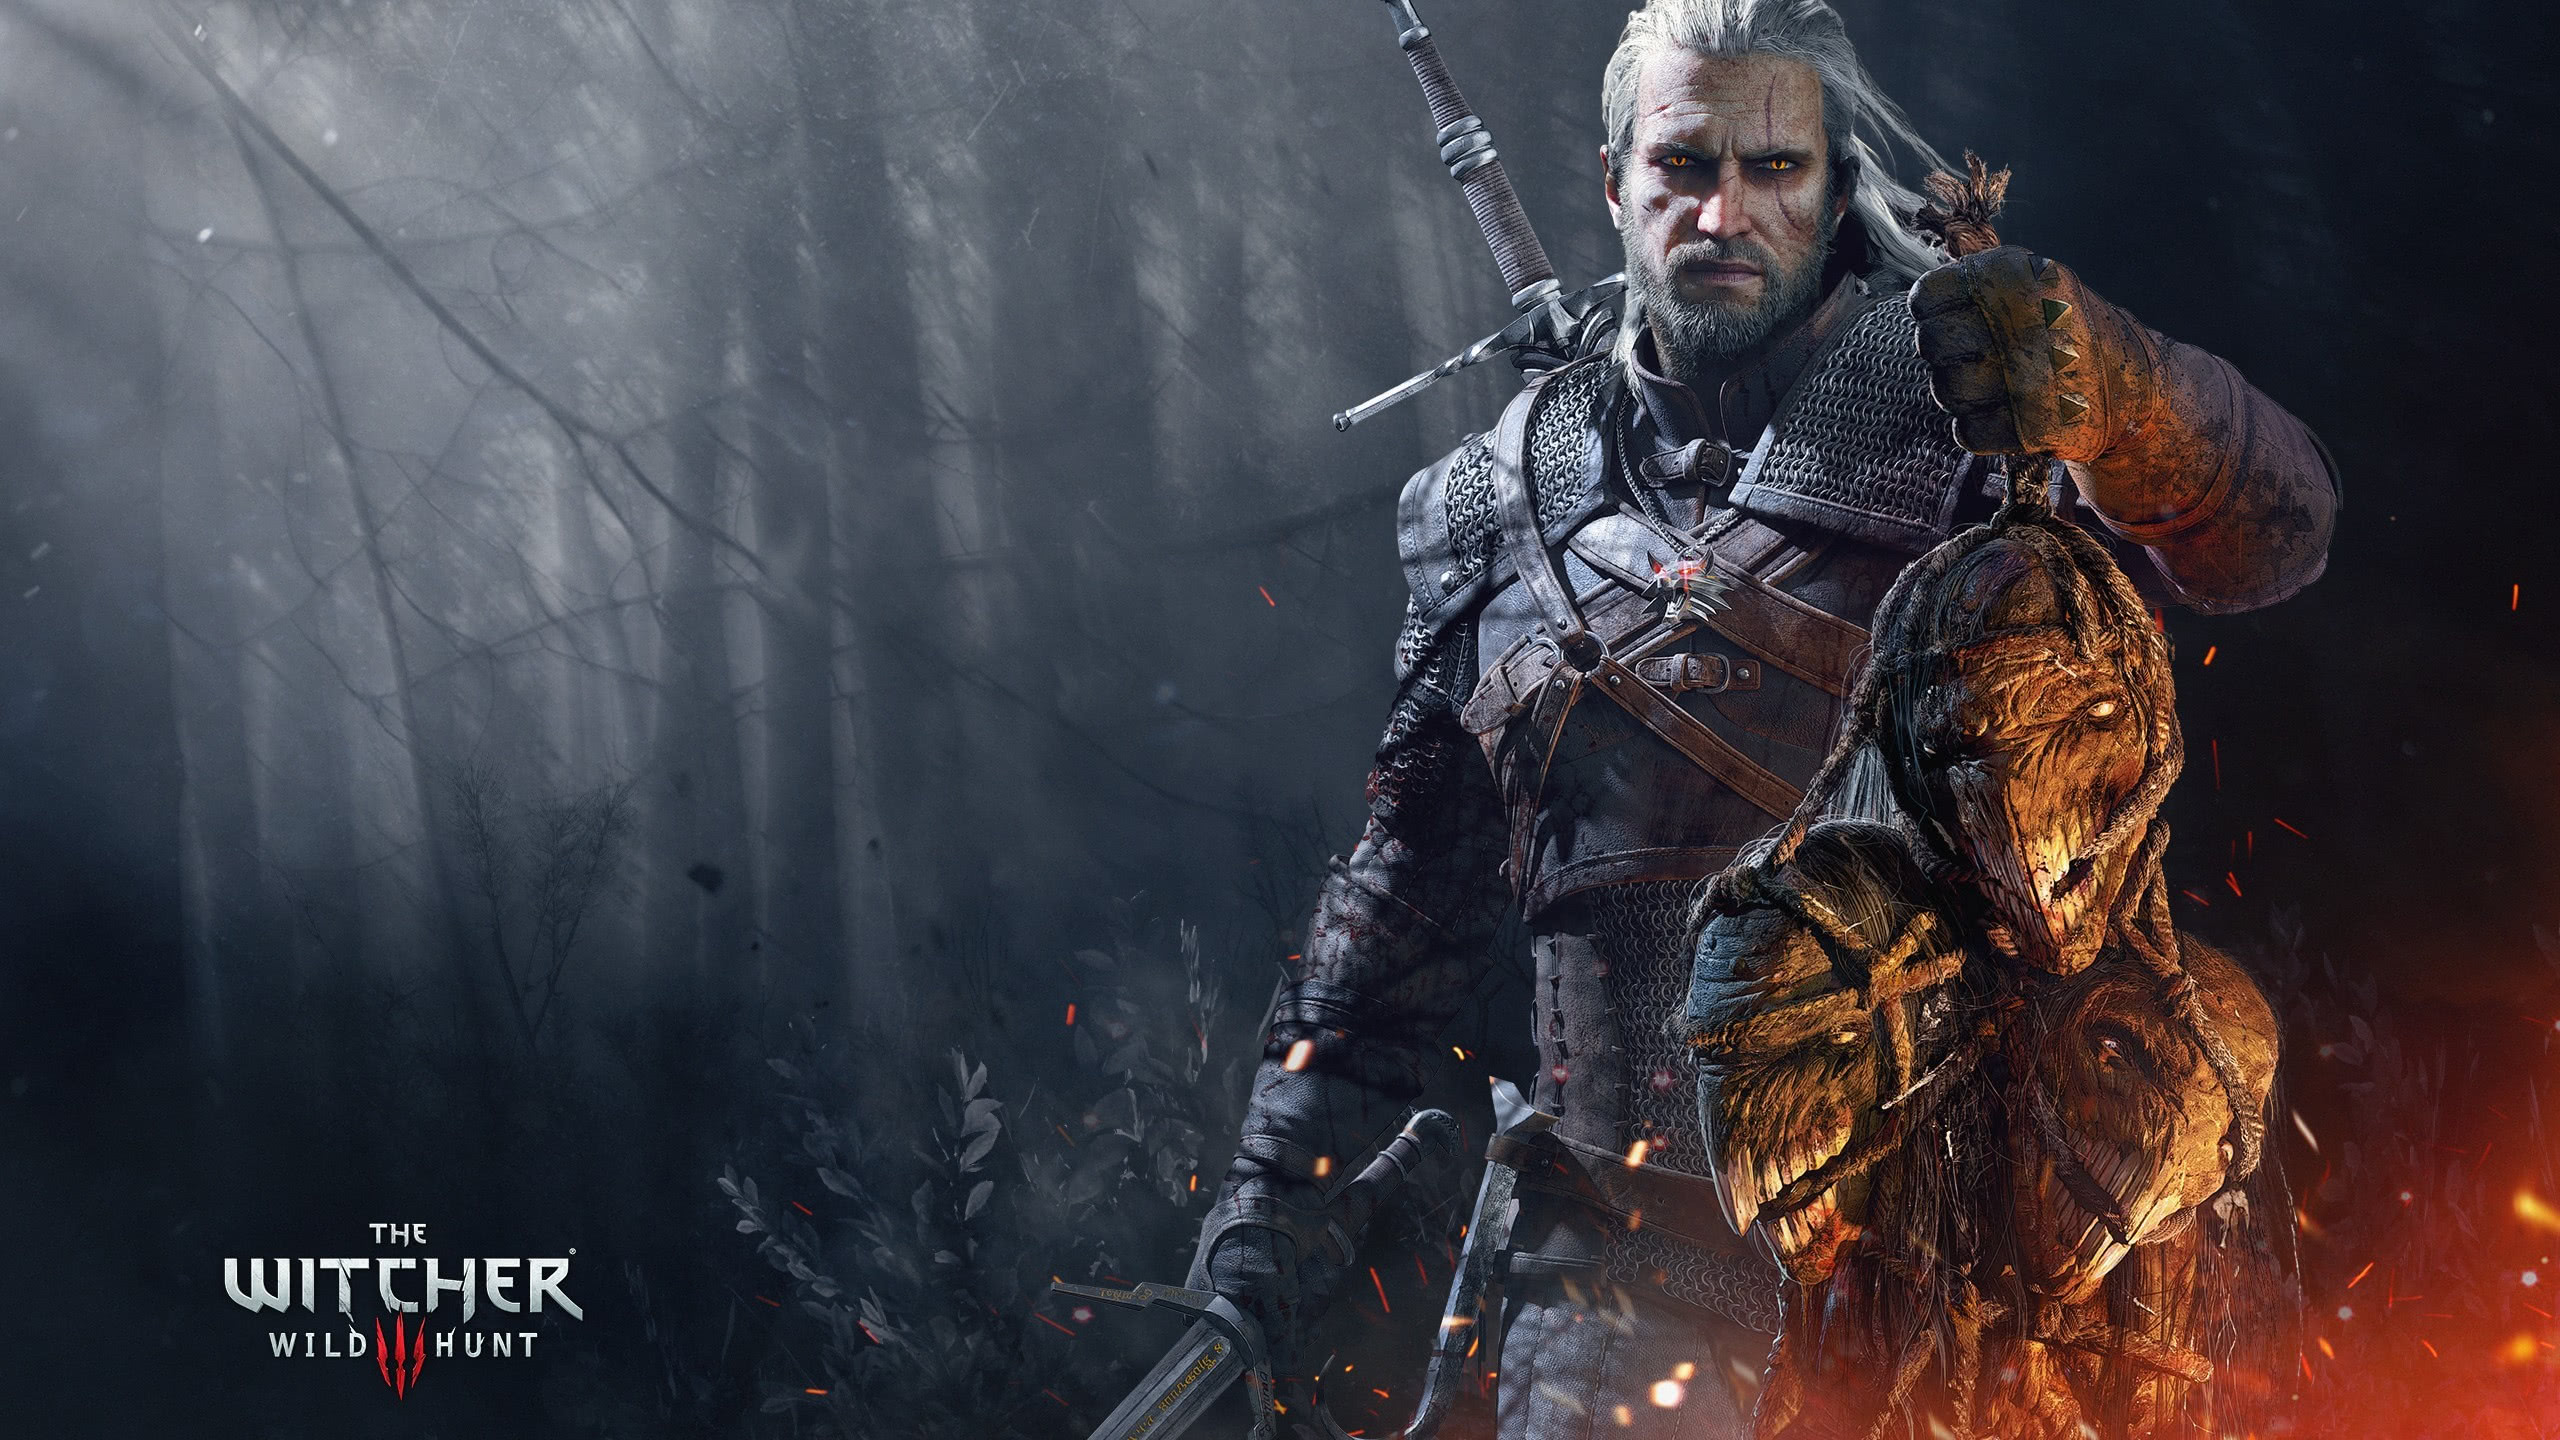 The Witcher 3 Wild Hunt Geralt Of Rivia Wqhd 1440p Wallpaper Pixelz